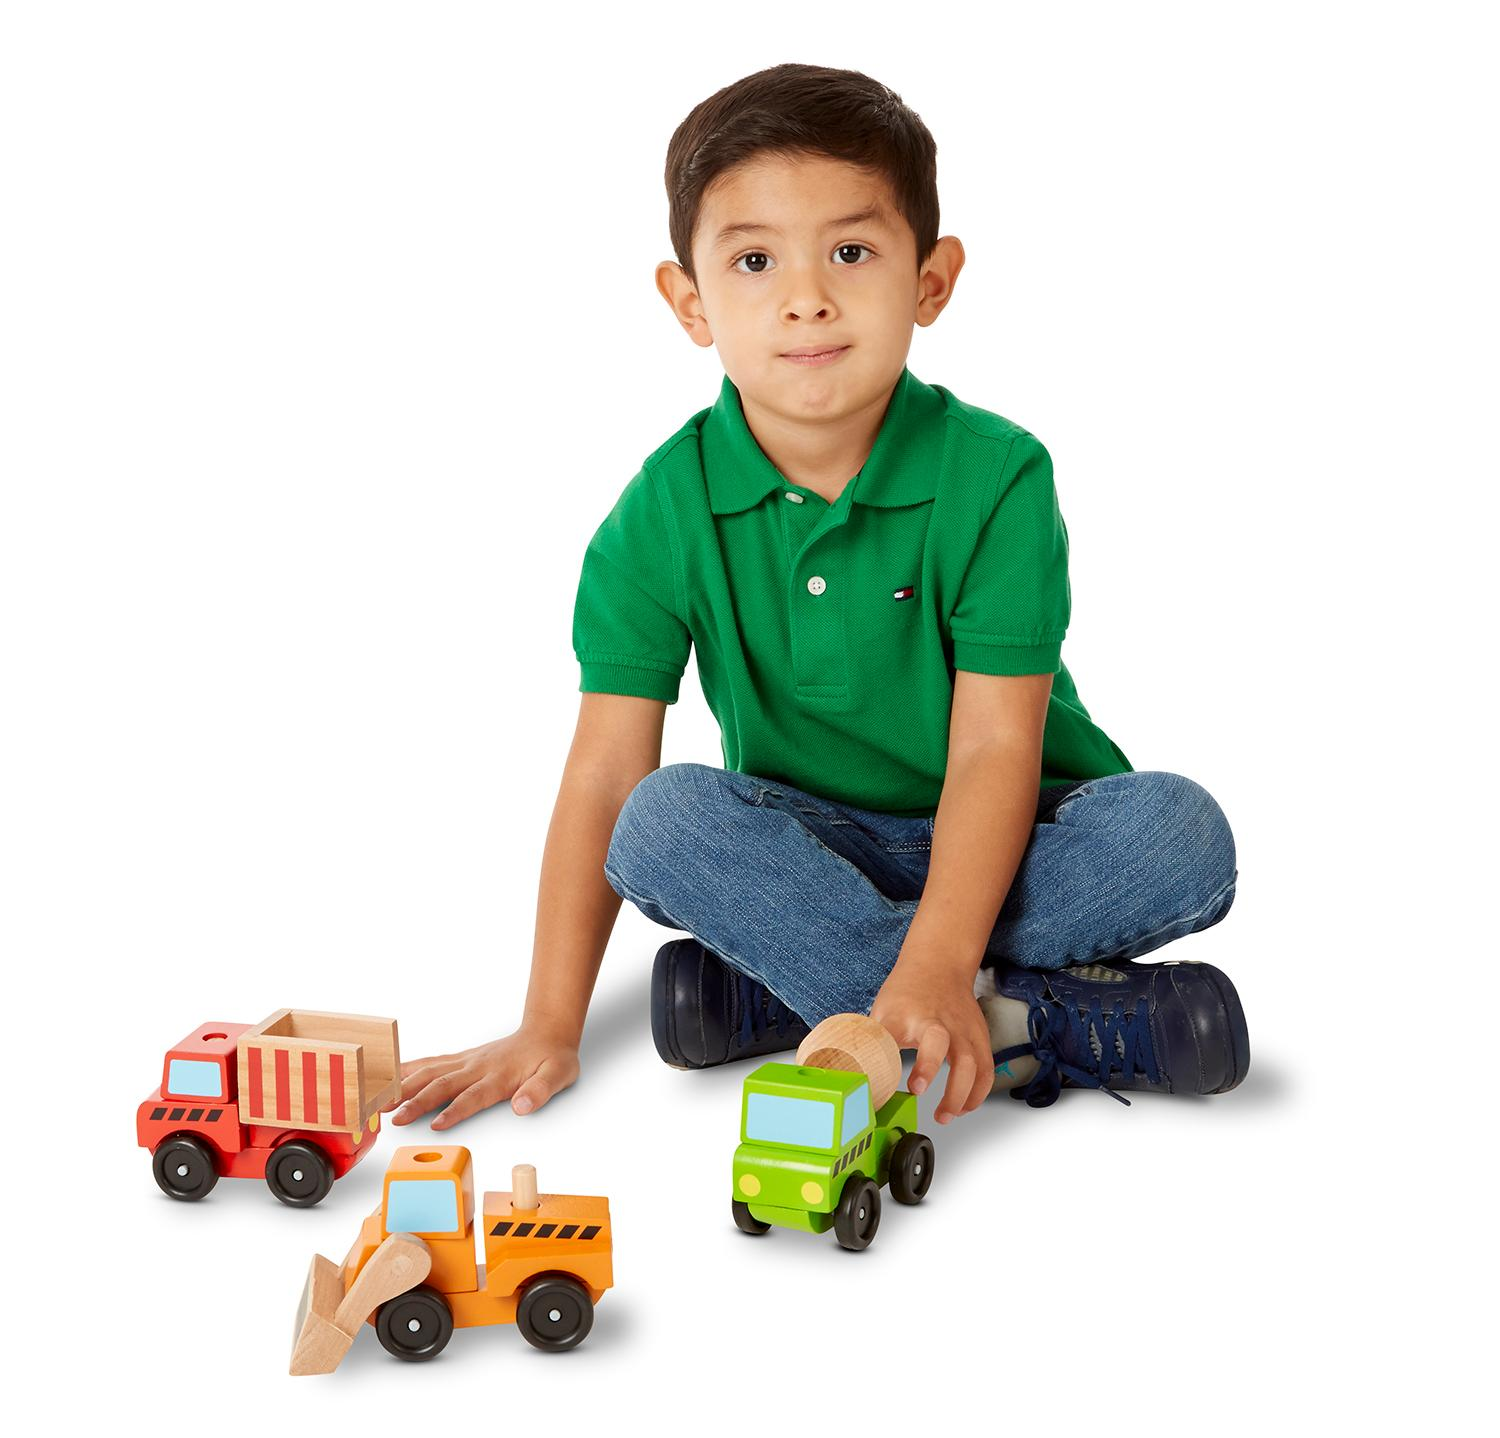 Construction Equipment Toys For Boys : Amazon melissa doug stacking construction vehicles